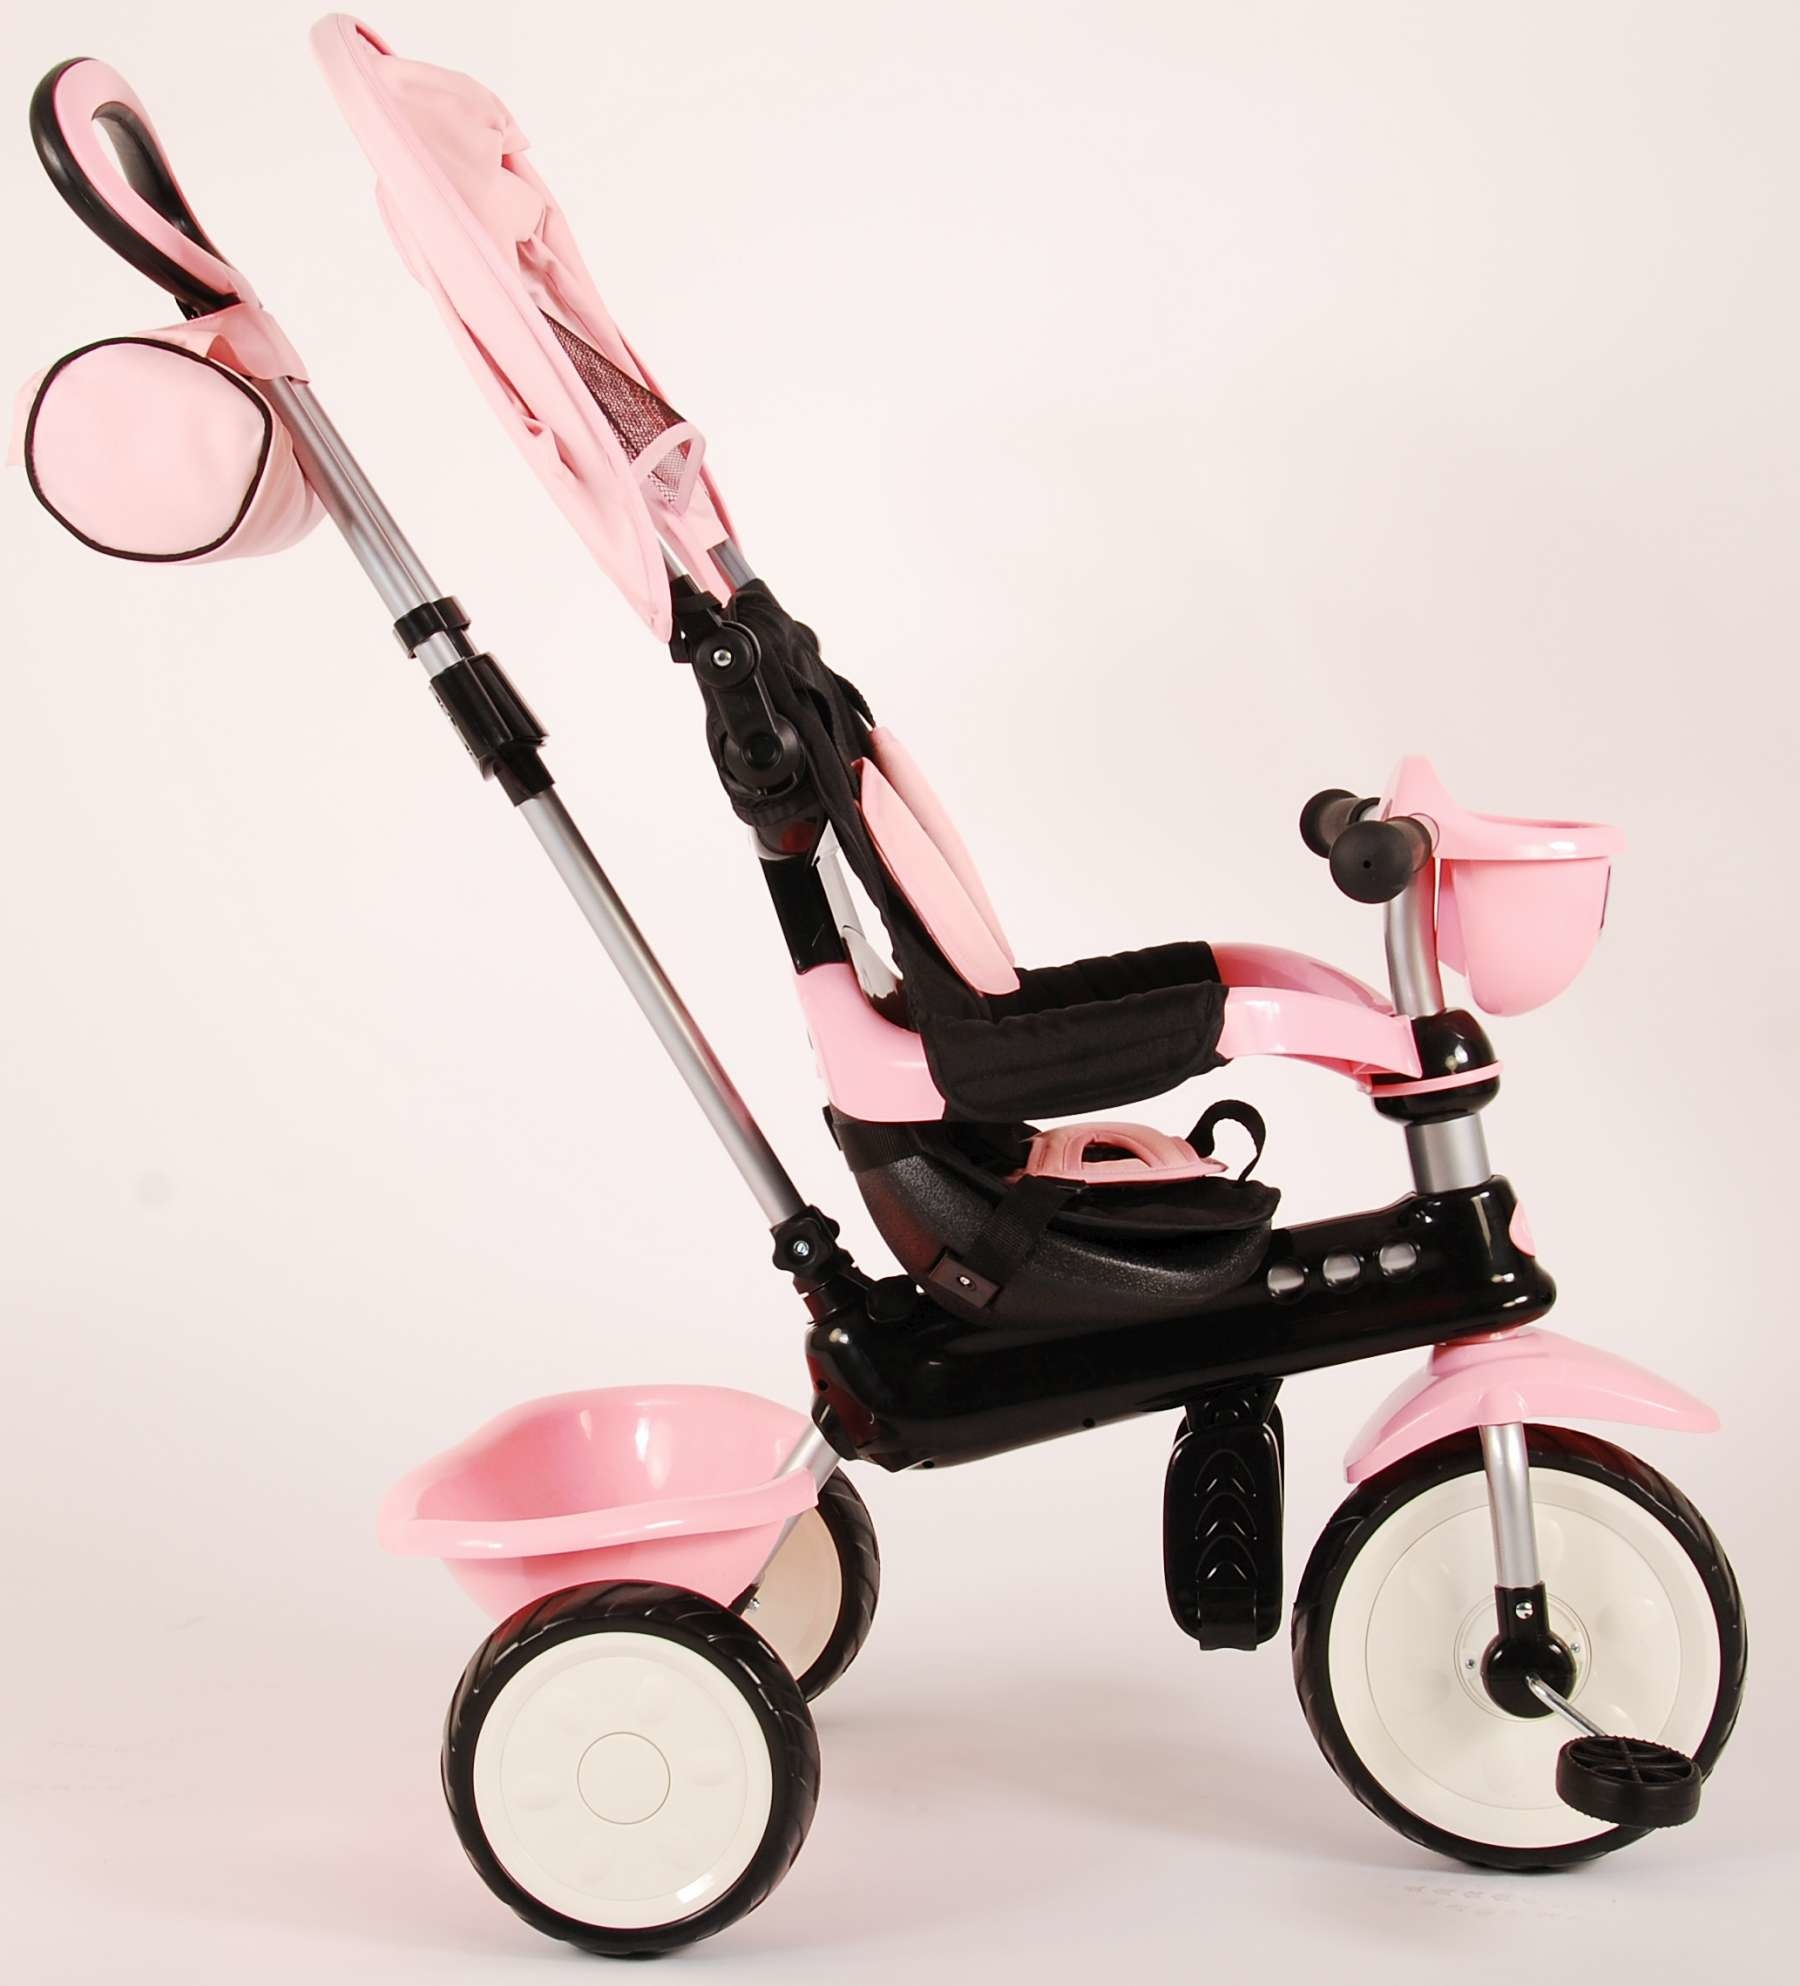 Q-PLAY Q-PLAY COMFORT DRIEWIELER 4 IN 1, ROZE